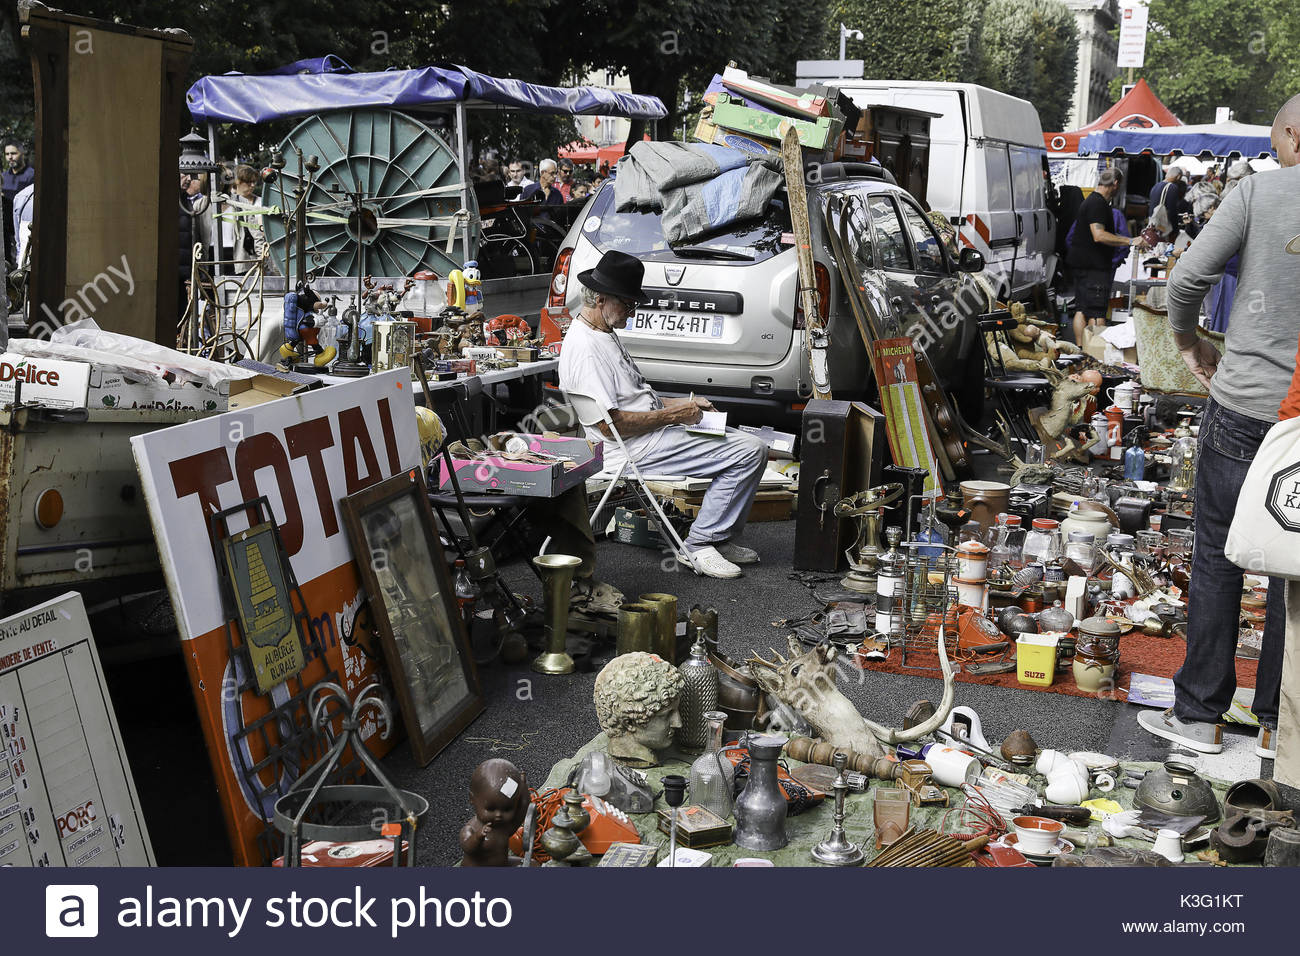 Lille france 2nd sep 2017 people visit the braderie de lille flea stock photo 157089852 alamy - Braderie de lille date 2017 ...